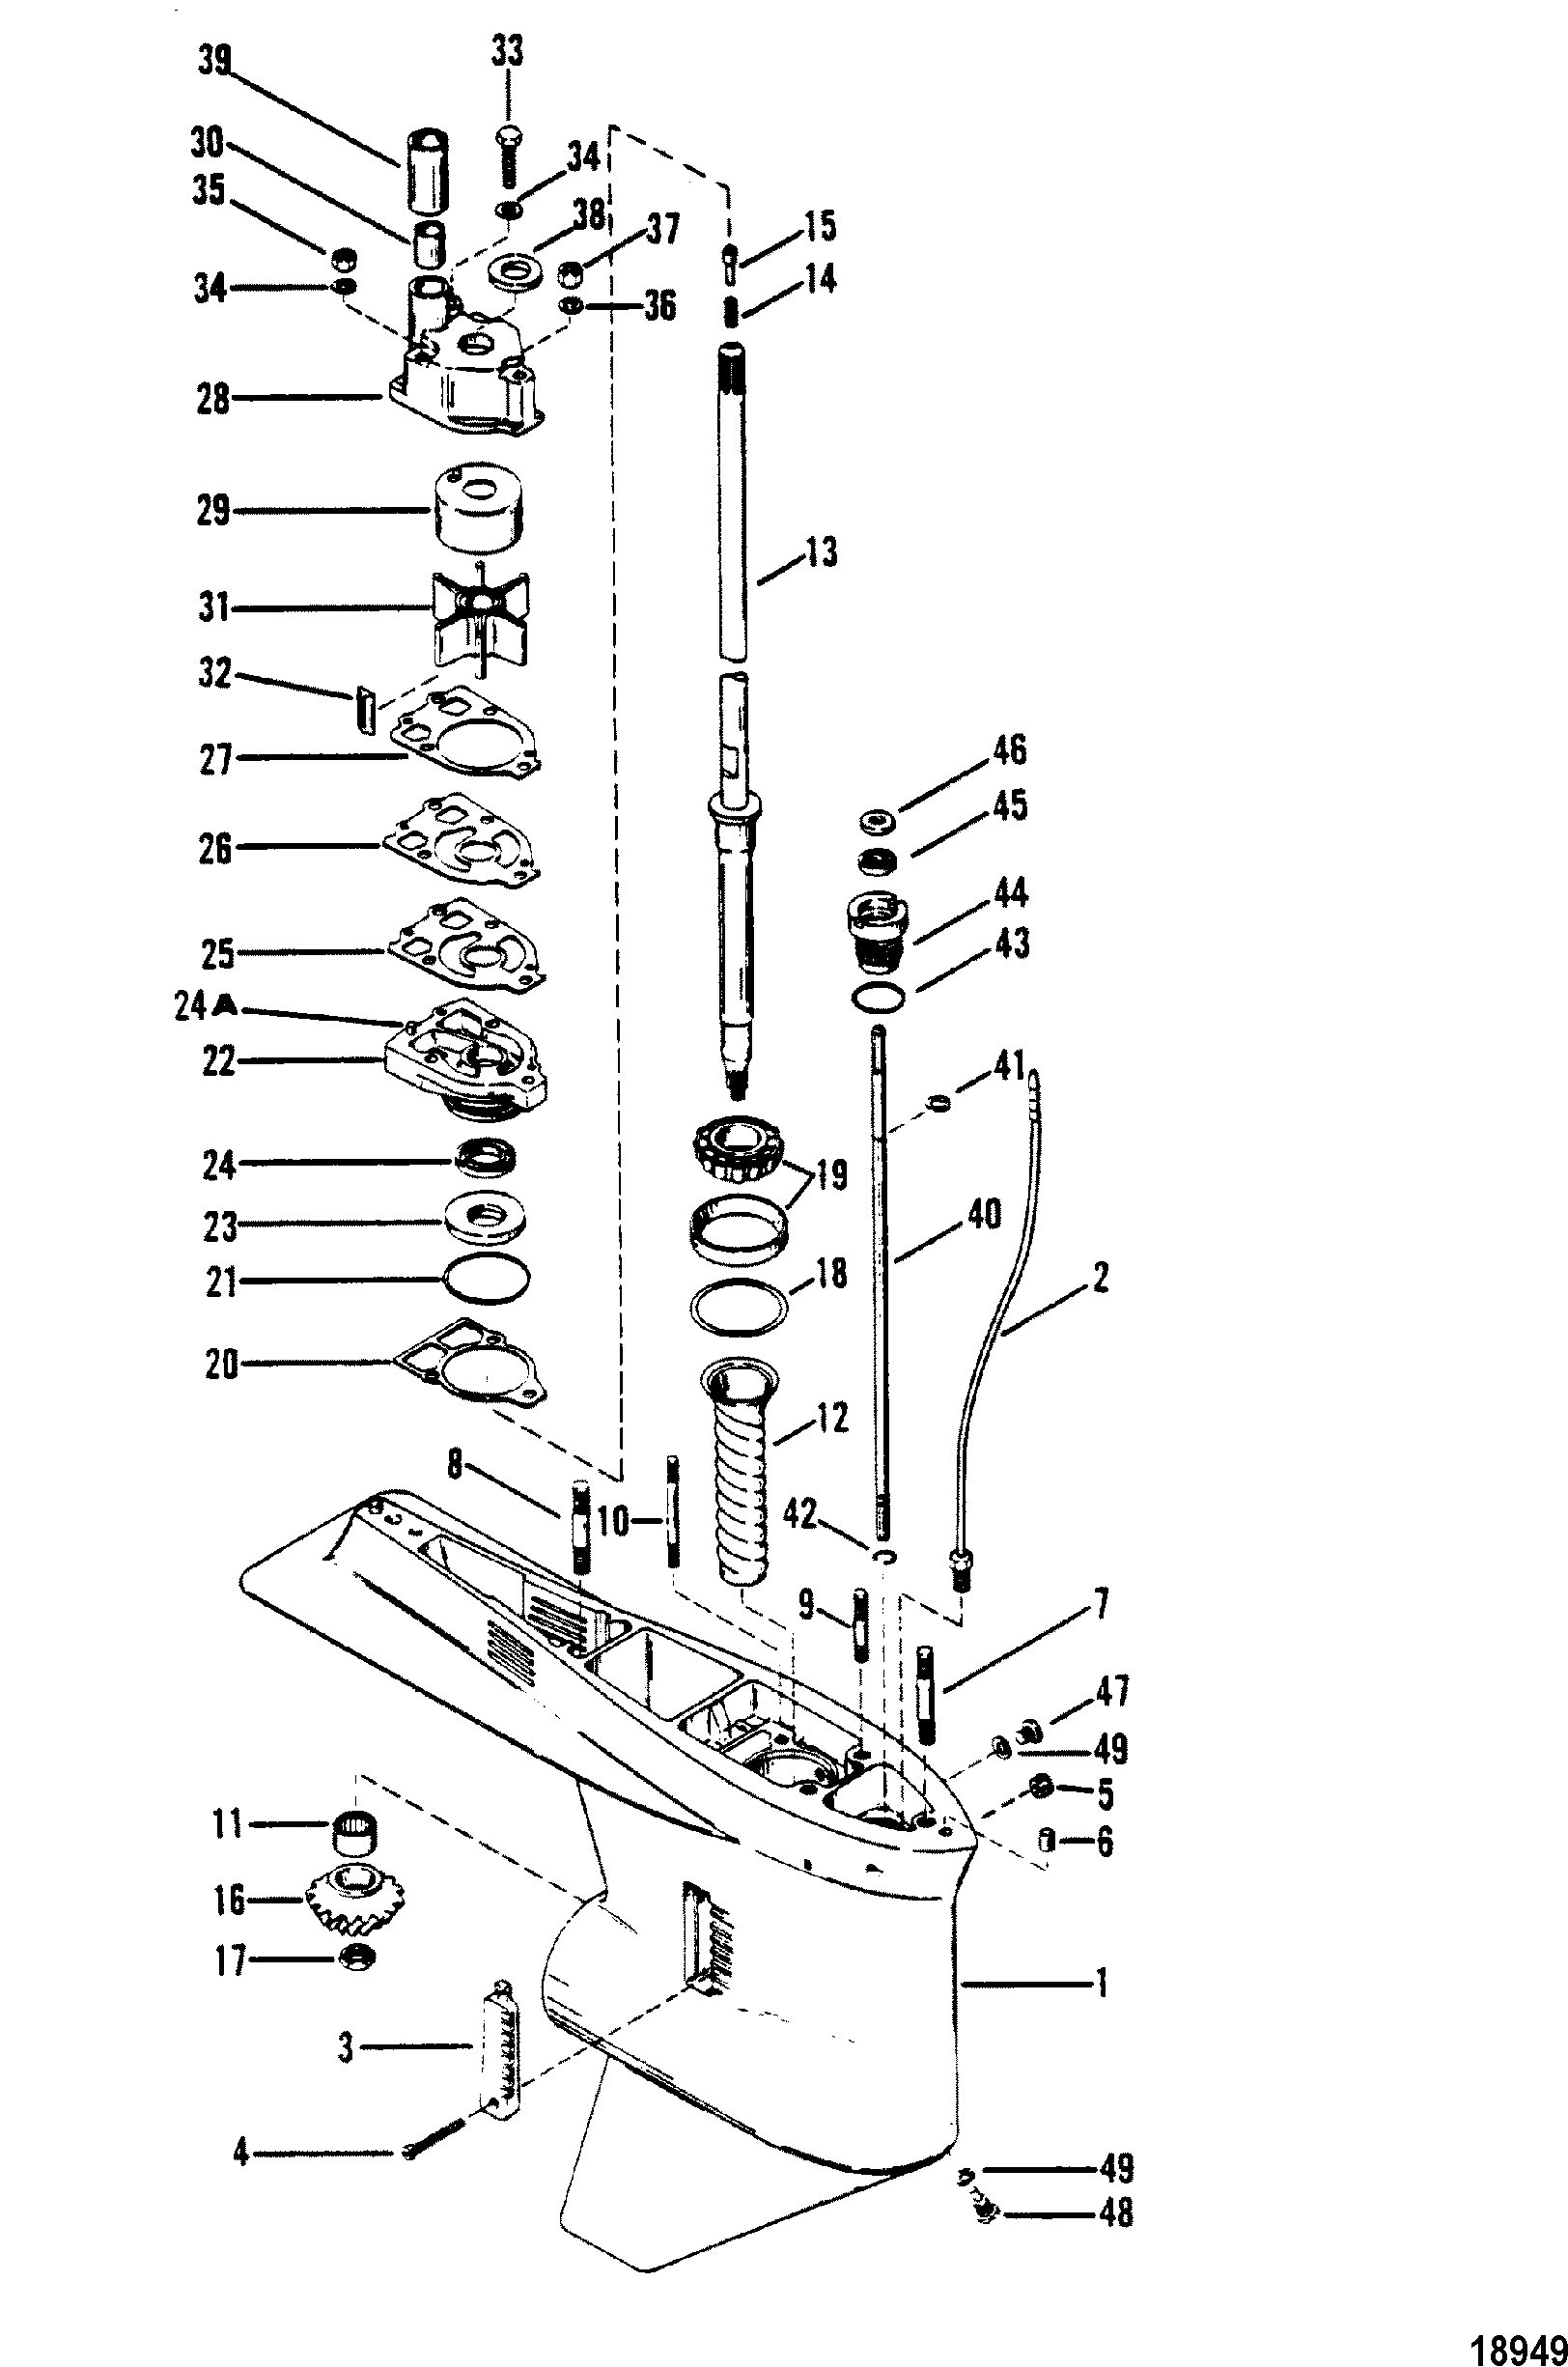 gear housing driveshaft without a driveshaft nut for